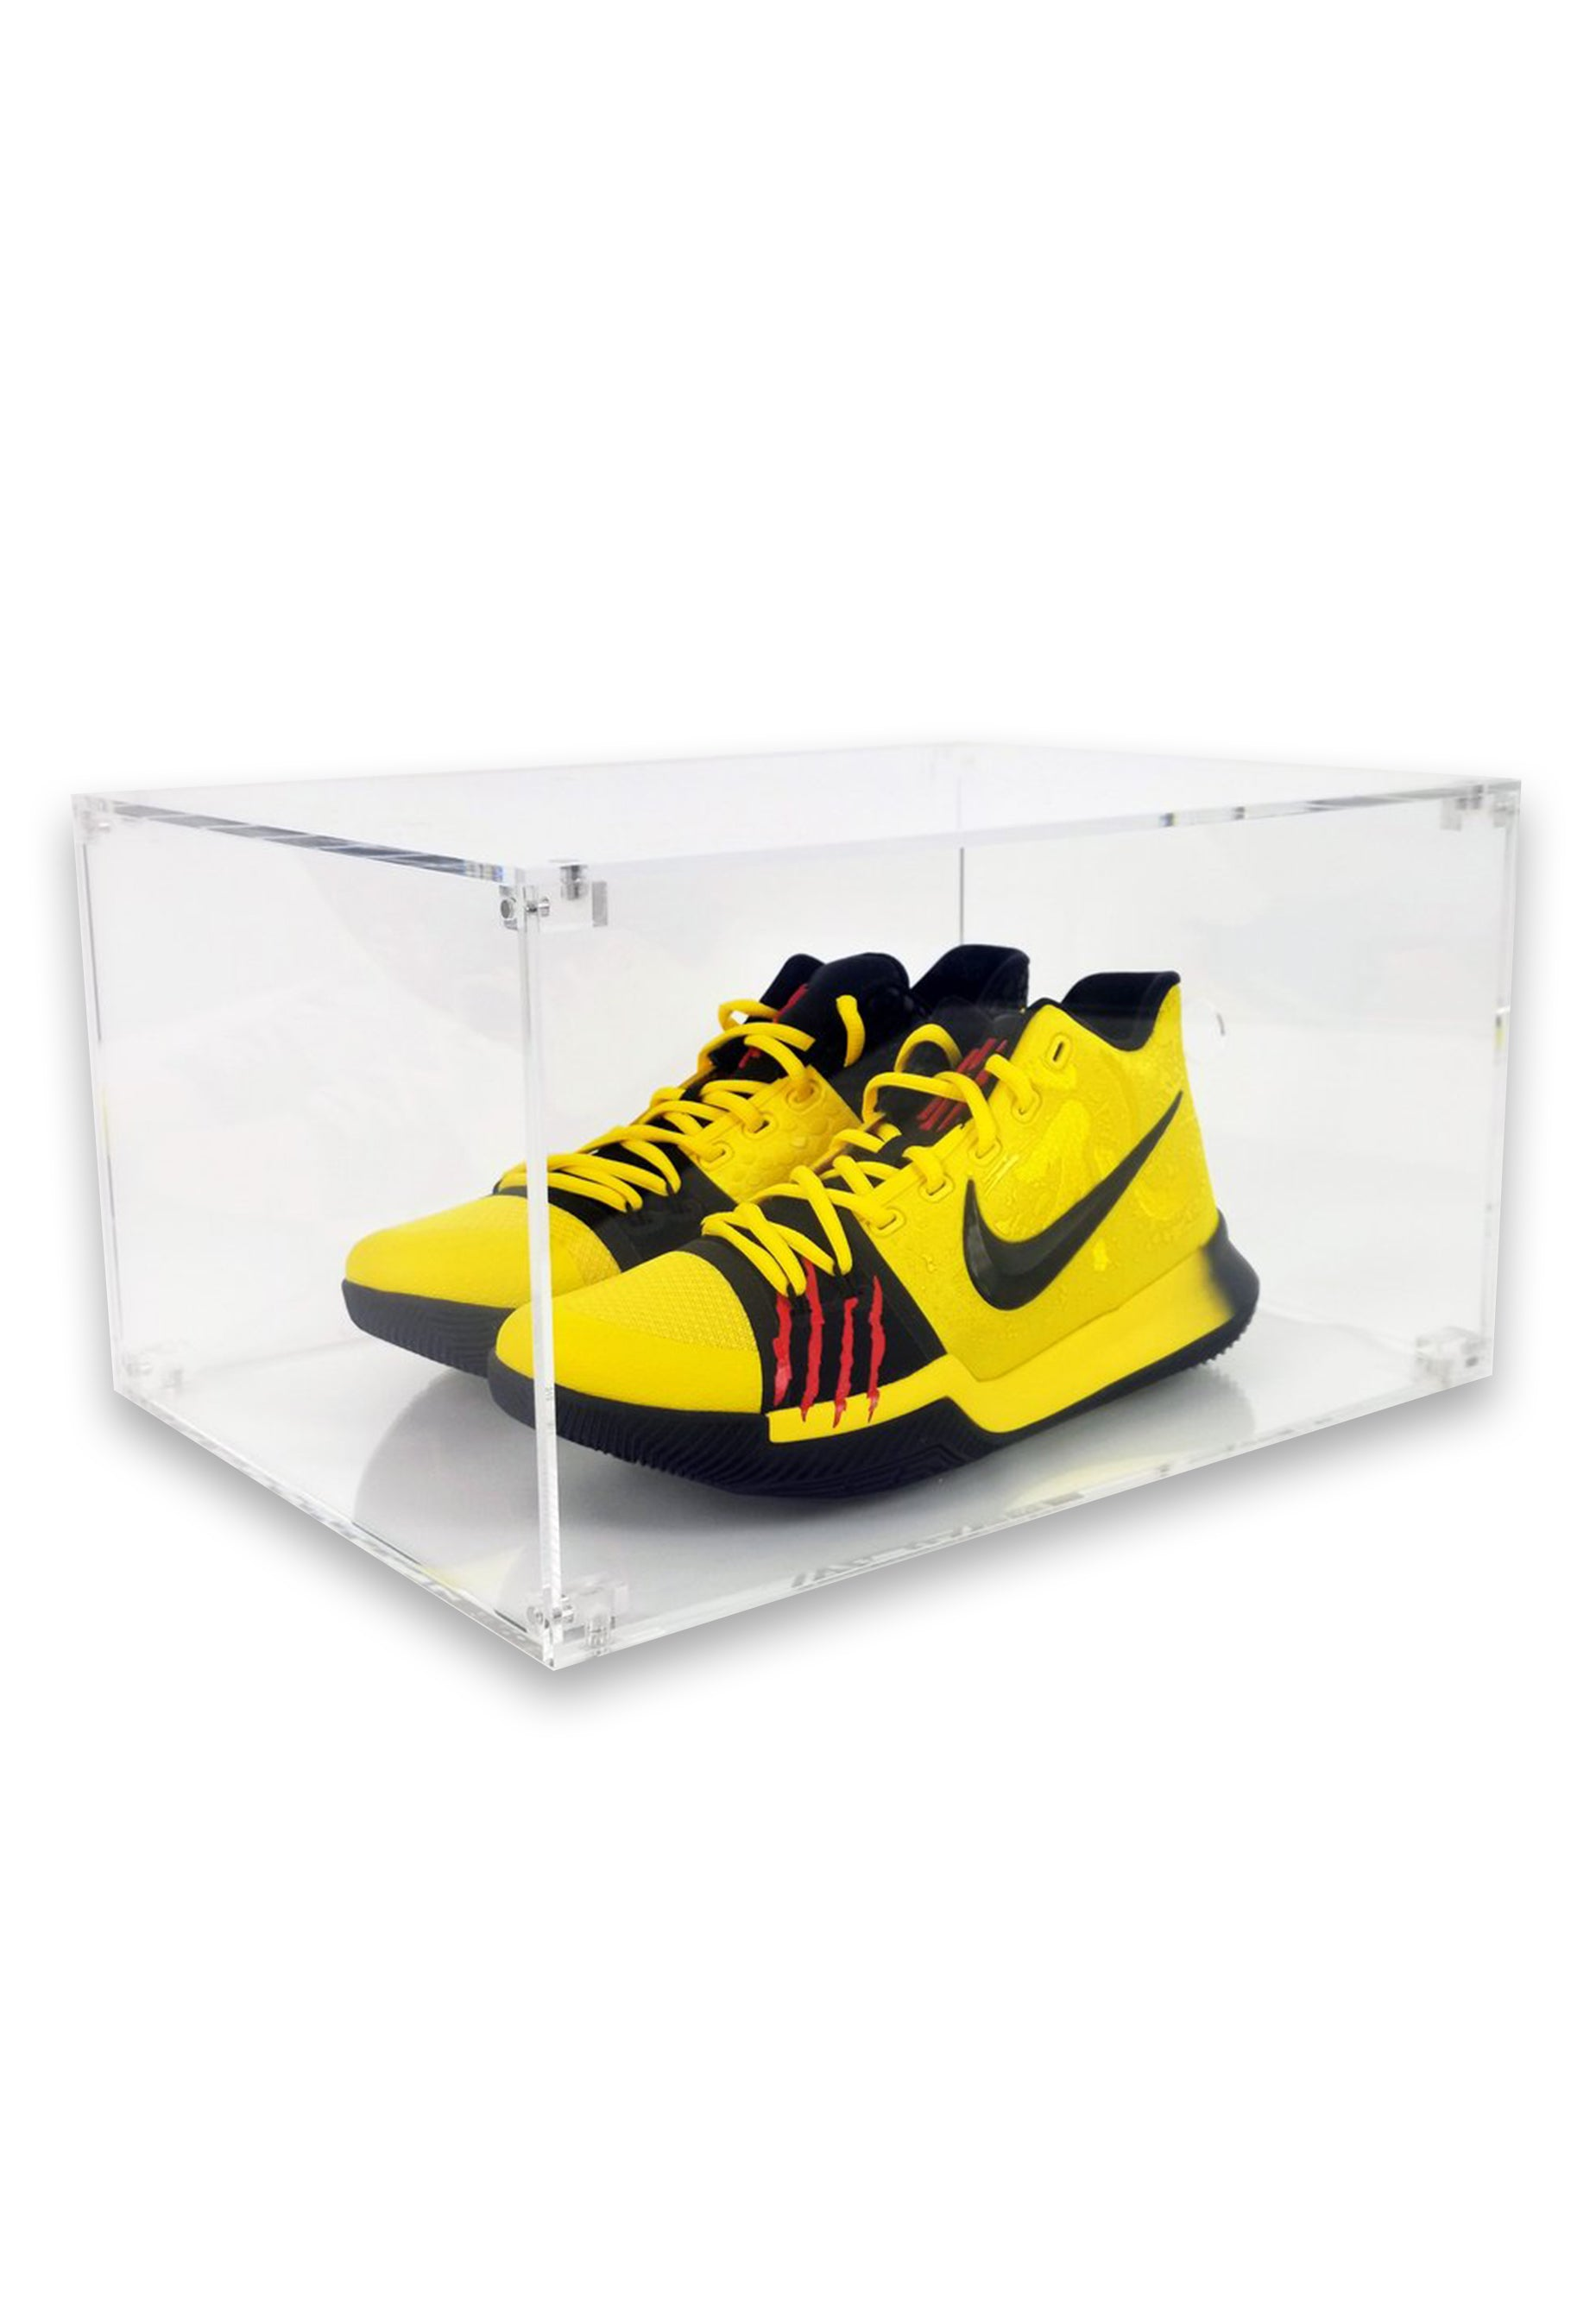 acrylic sneaker shoe display case box collapsible magnetic